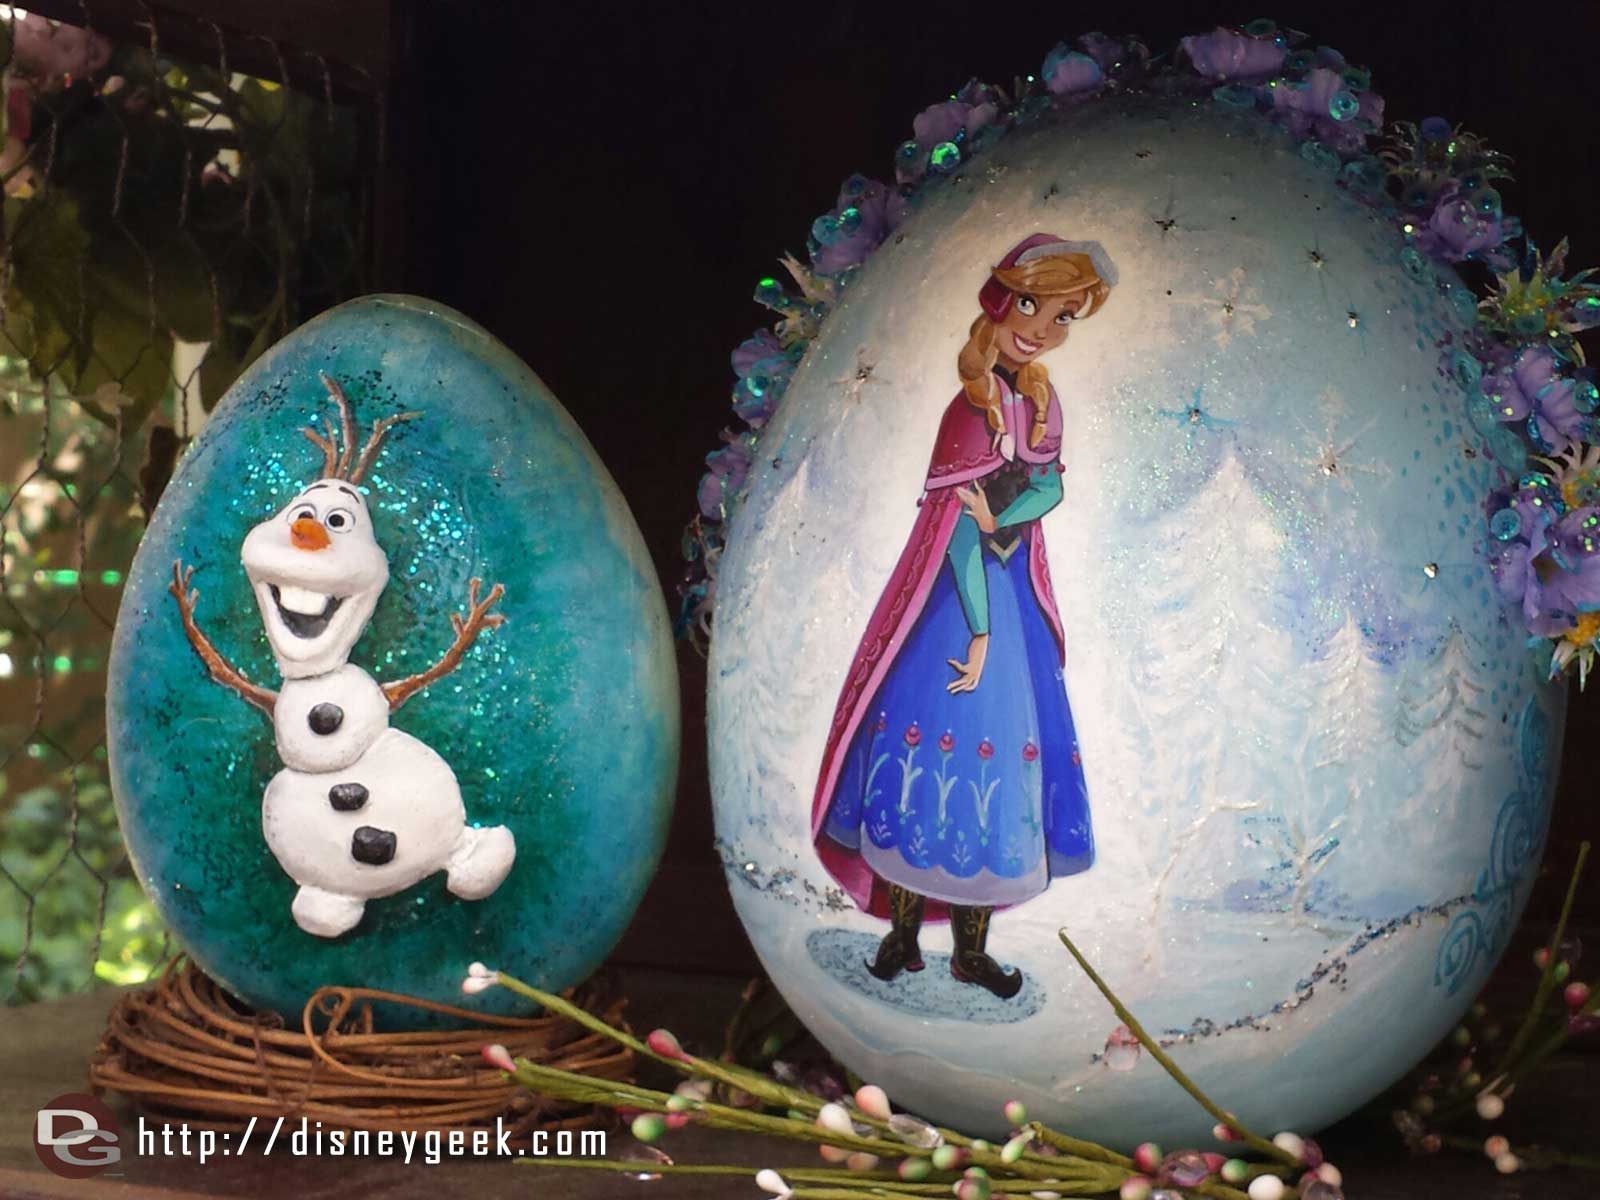 Disneyland's Amazing Egg Decorator's Creations @ Springtime Roundup